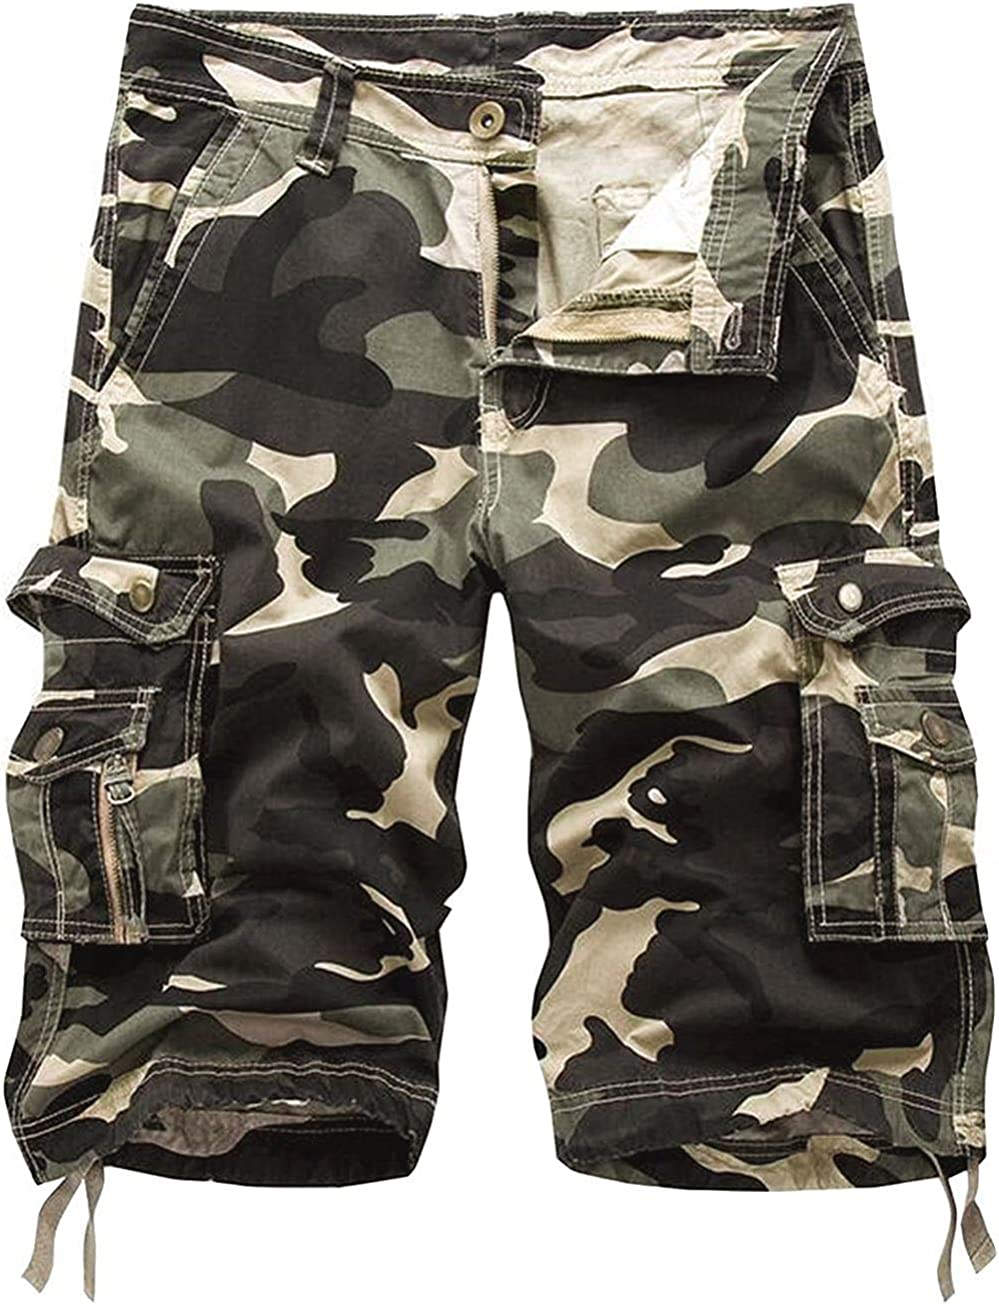 Outlet ☆ Free Shipping GOCHIC Direct store Men's Relaxed Fit Cargo Pockets Multi with Shorts